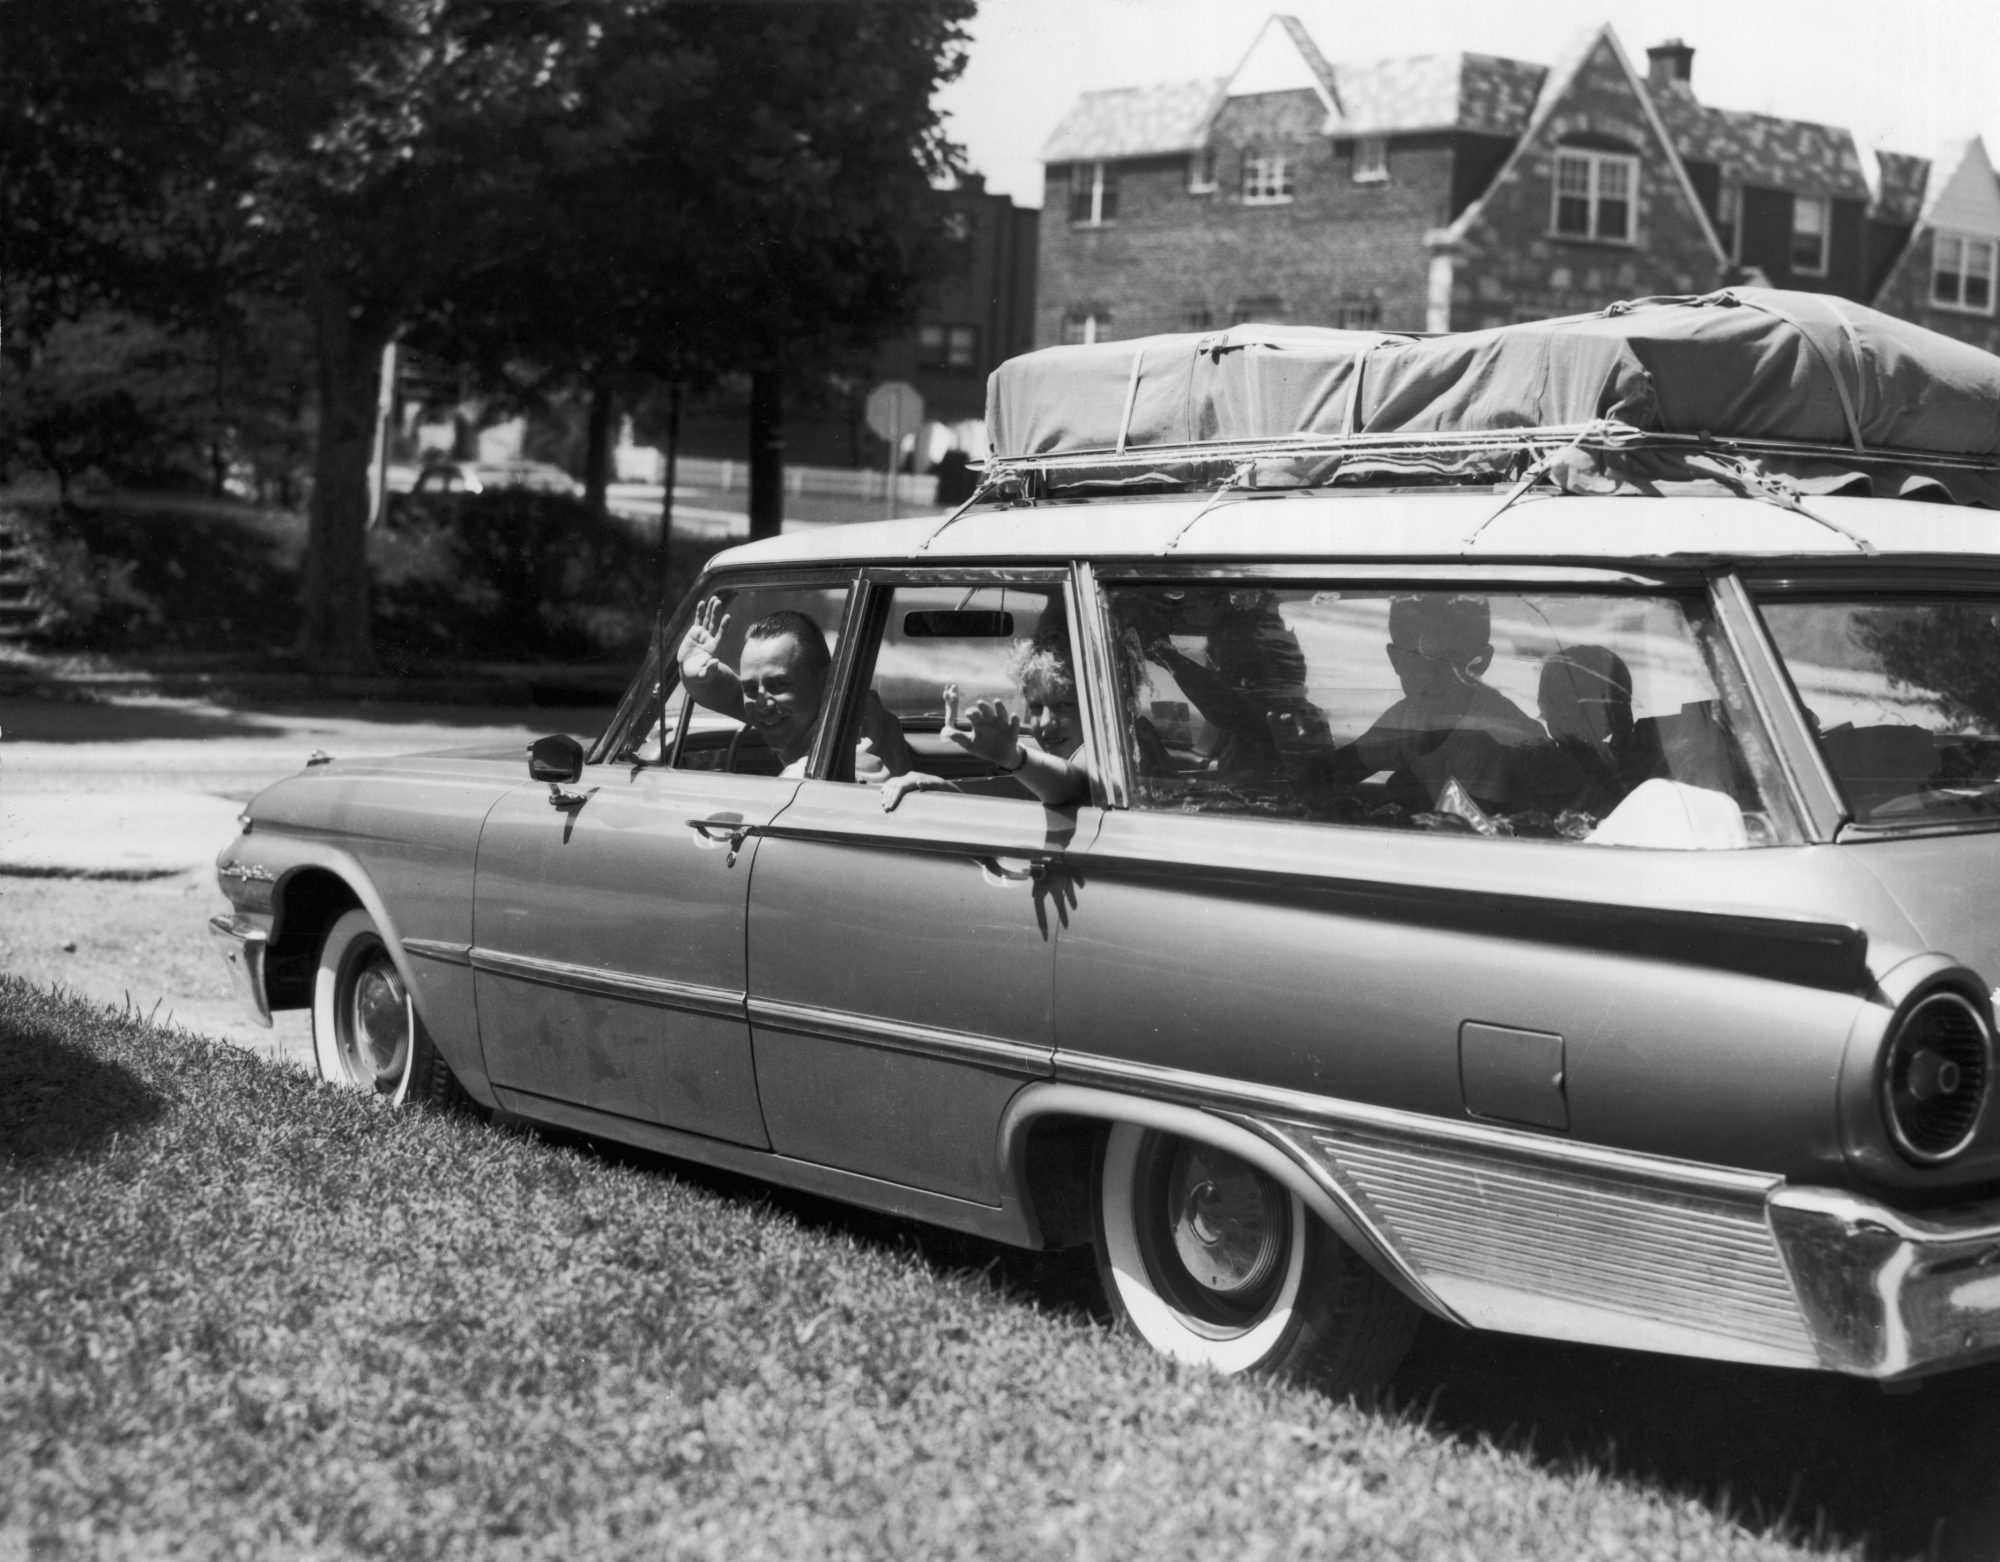 Family Waiving Out Packed Car